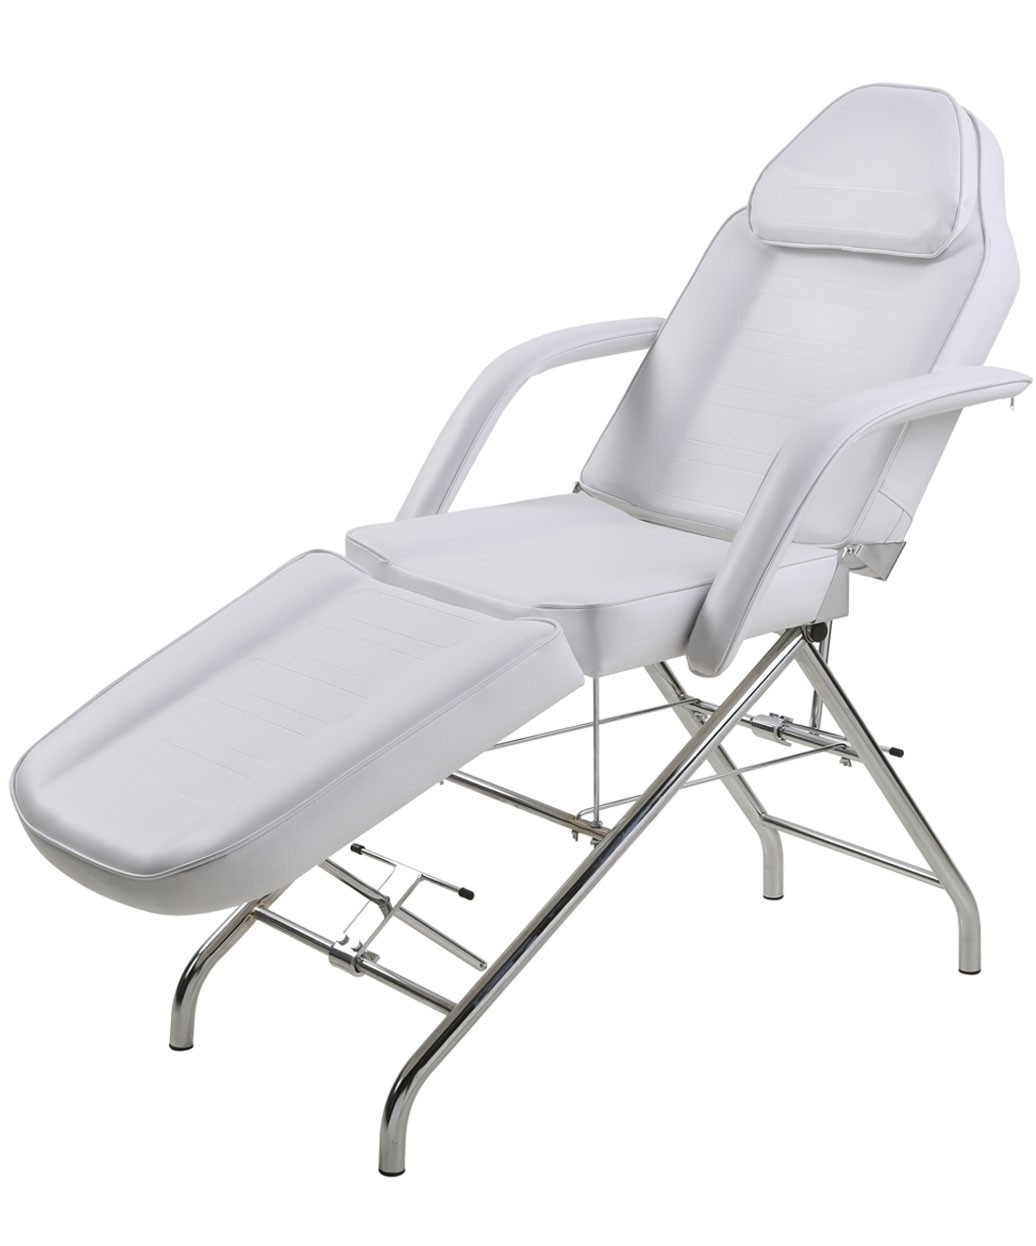 Platinum Facial Spa Package Stationary Facial Bed